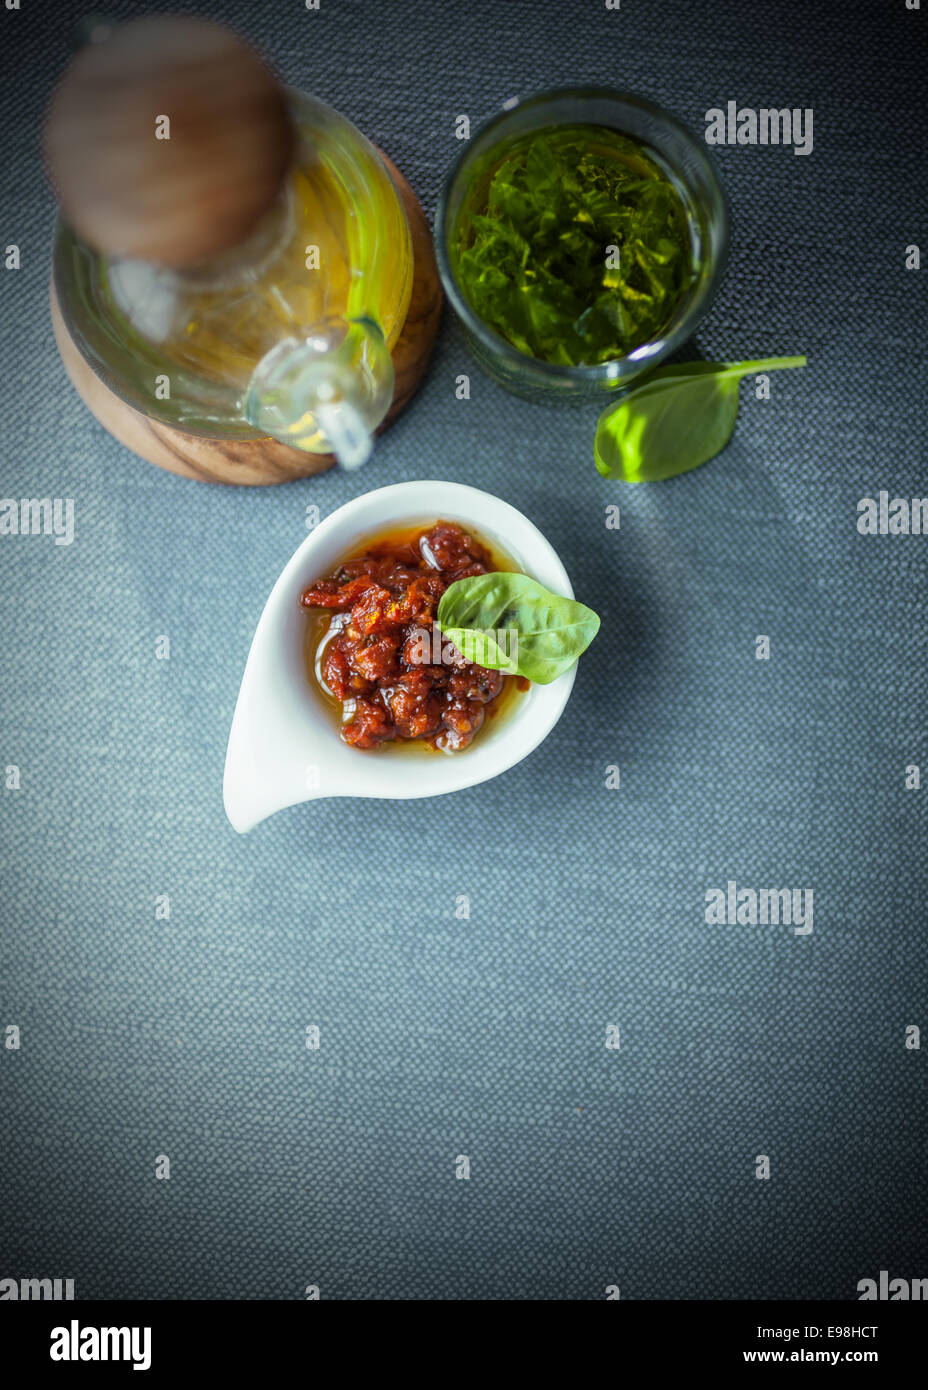 Savory condiments in a restaurant with a spicy dip, virgen olive oil in a decanter and fresh basil pesto, overhead - Stock Image